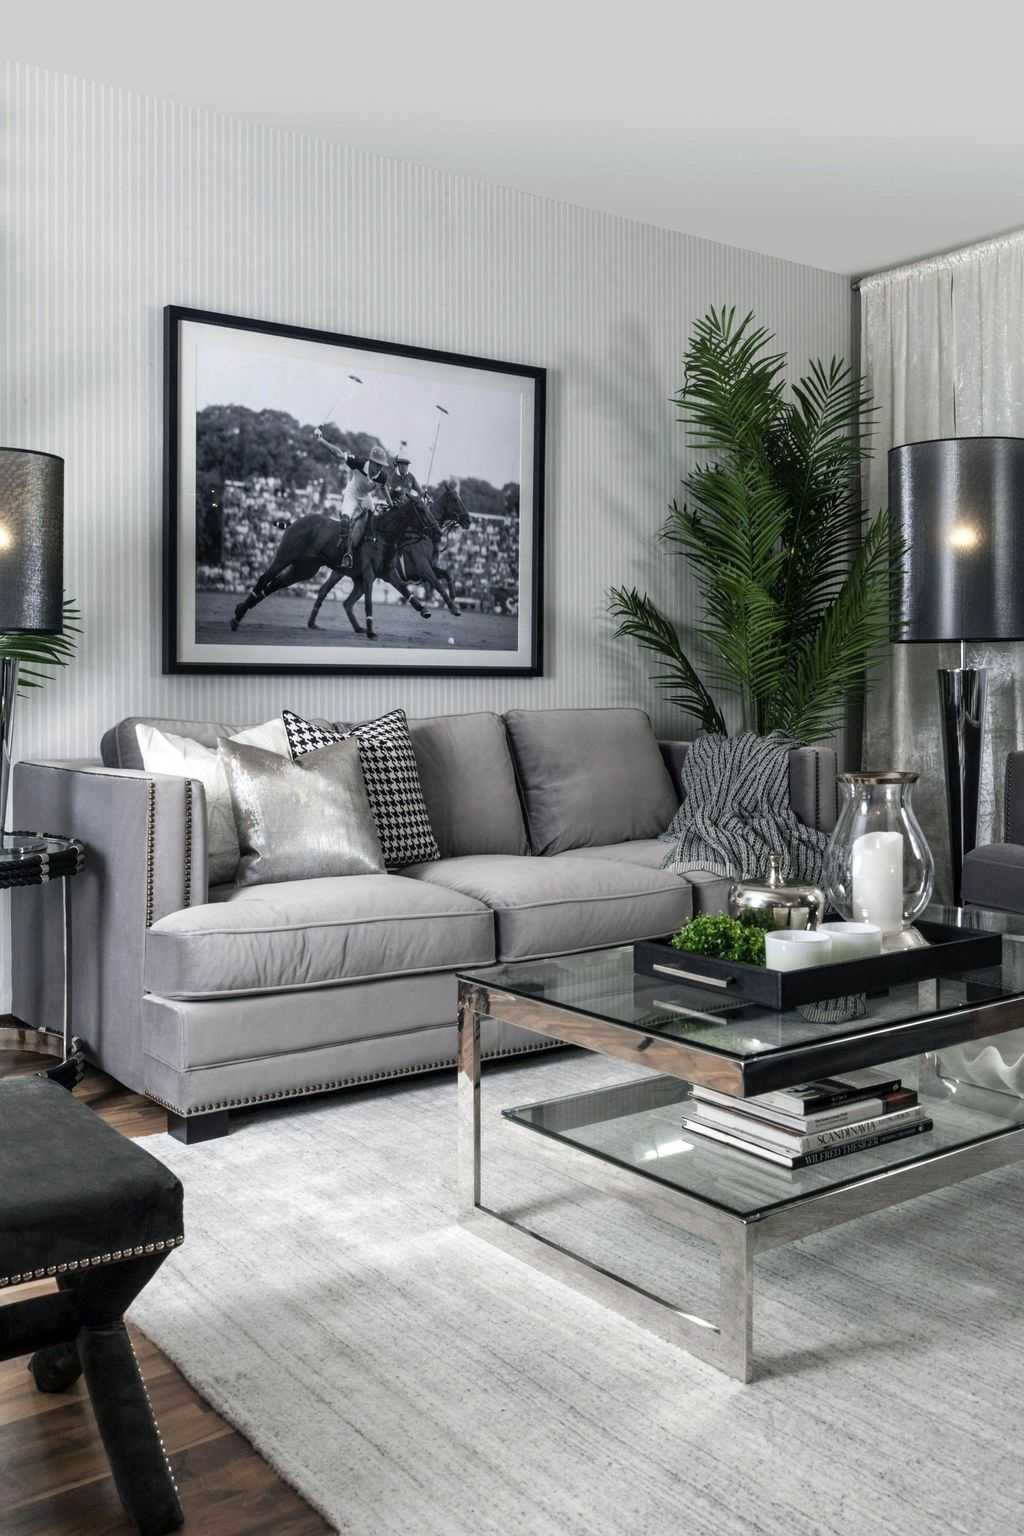 30 Relaxing Masculine Living Room Design Ideas To Try Living Room Grey Masculine Living Rooms Minimalist Living Room Manly living room colors